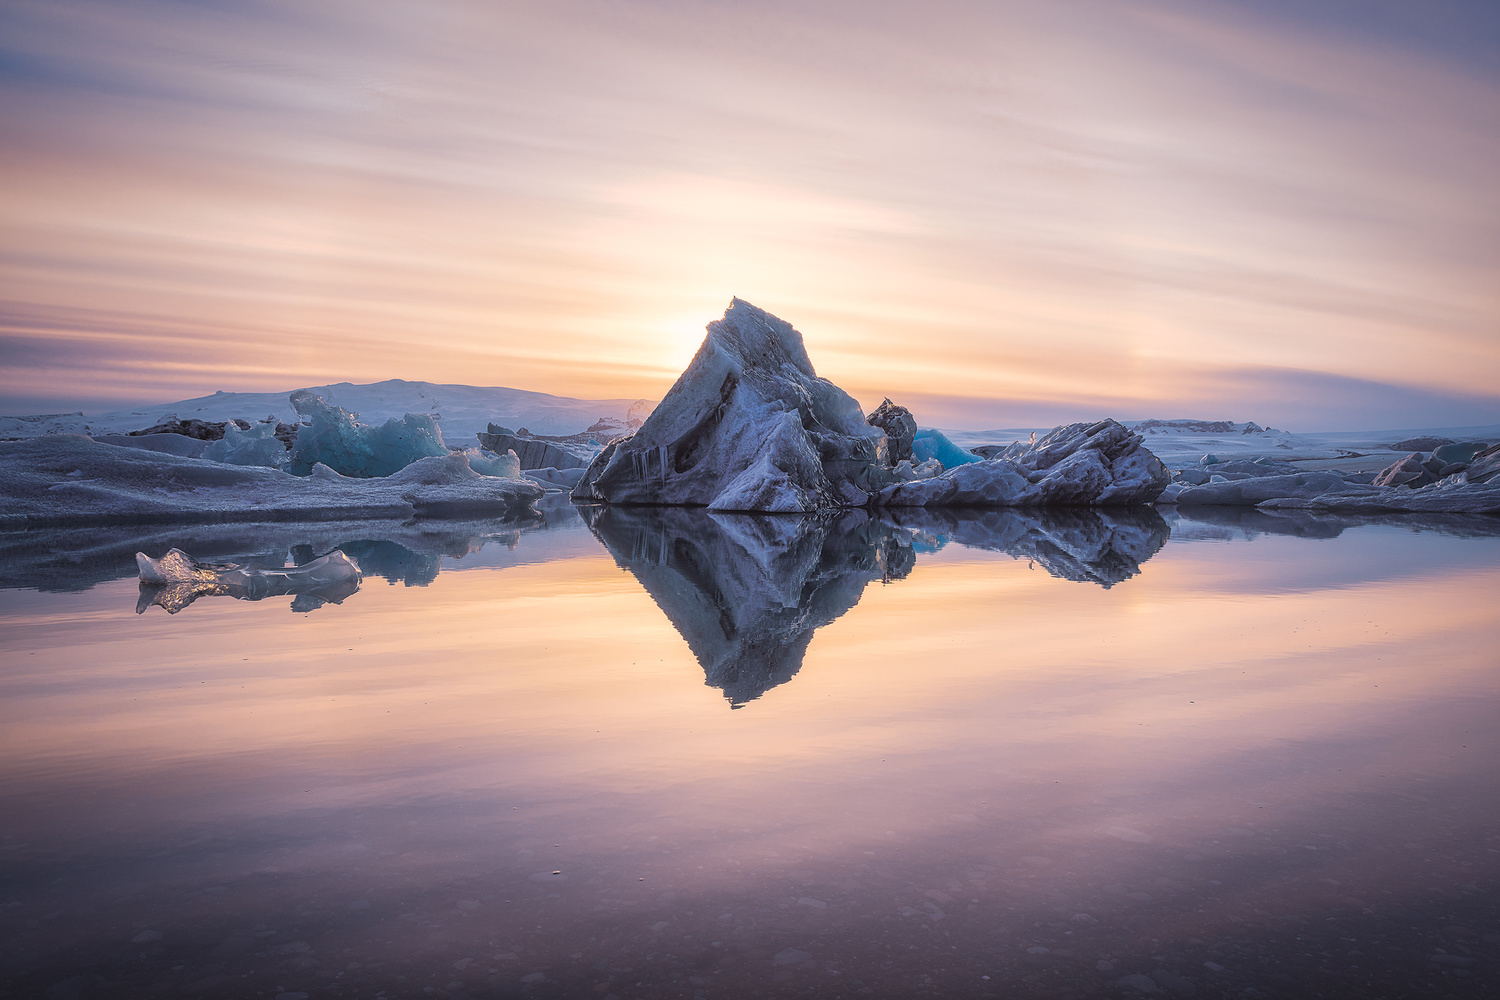 Iceland - Fire beyond the Ice by Jean Claude Castor